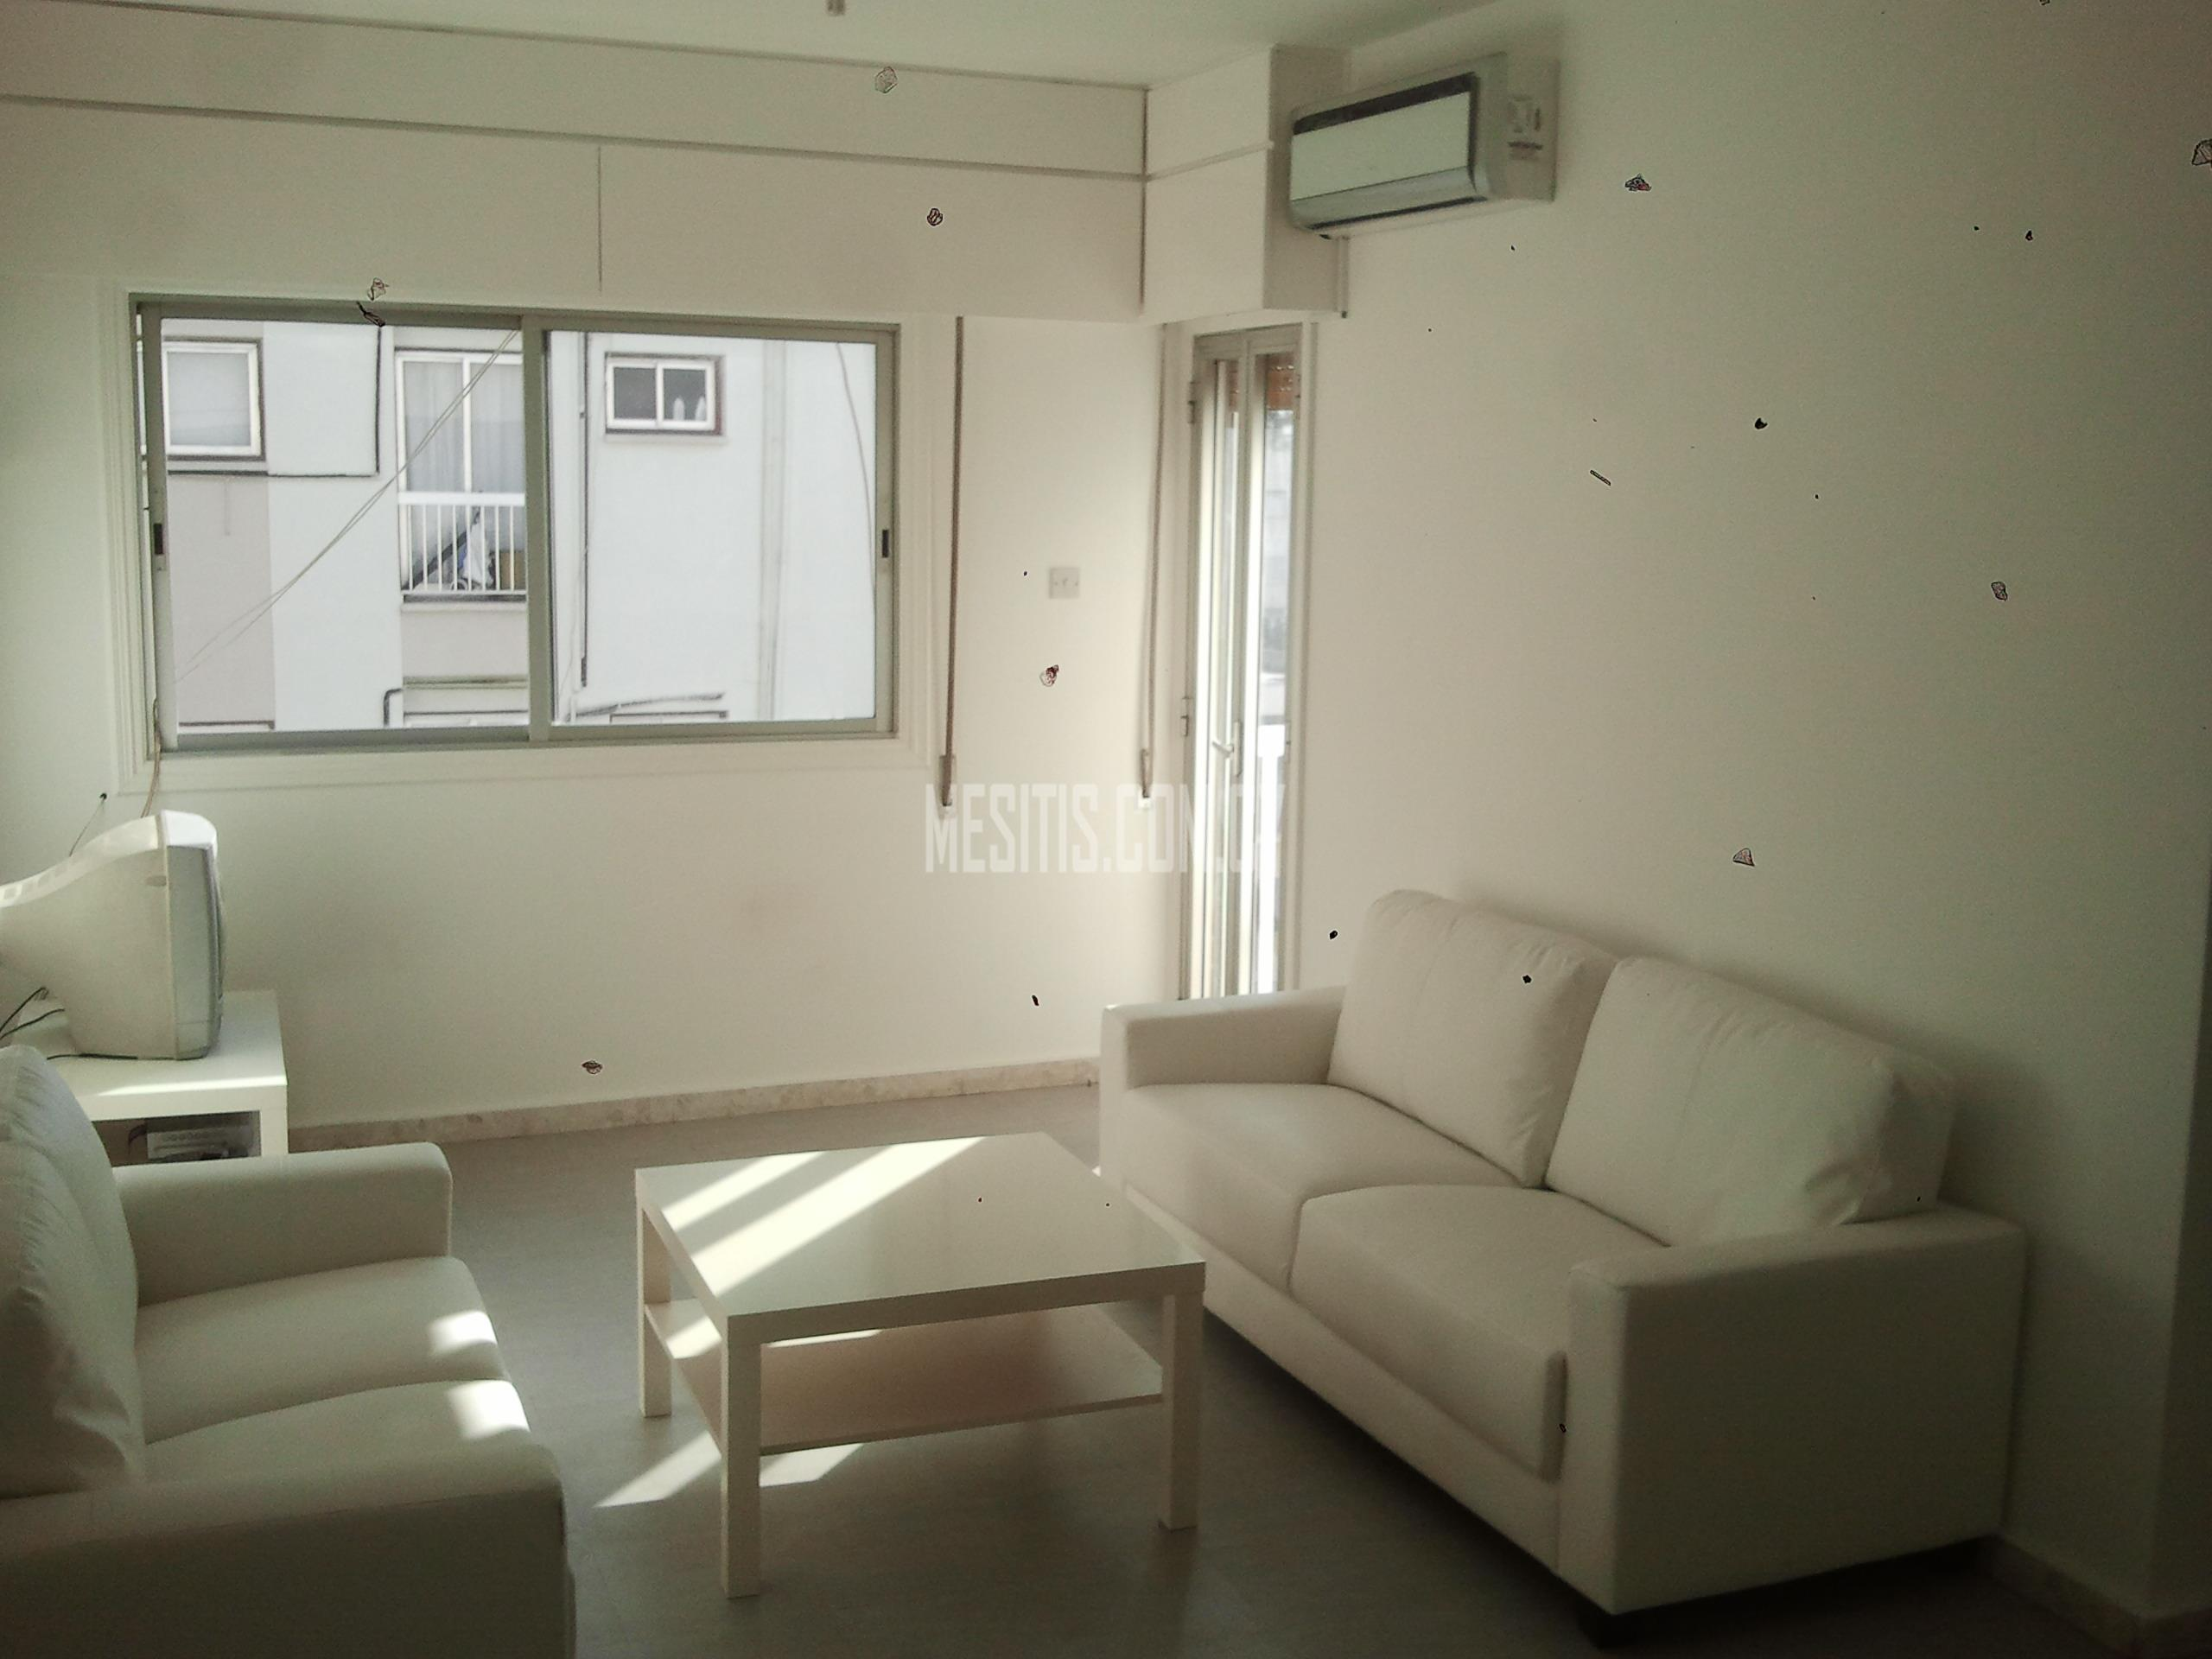 2 bedroom apartment for rent in akropoli for 2 bedroom apartments for rent